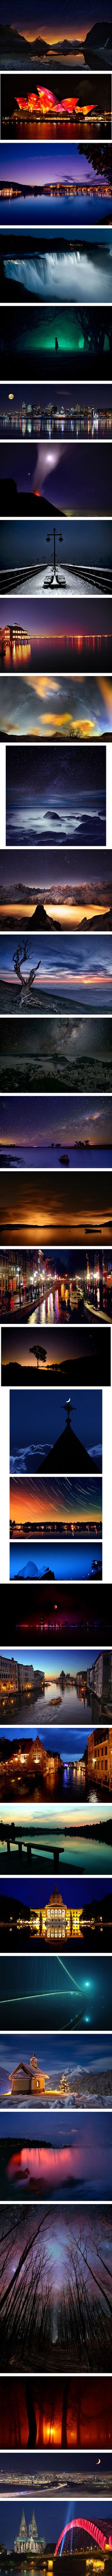 Night #Photography....night time photography is so impressive!